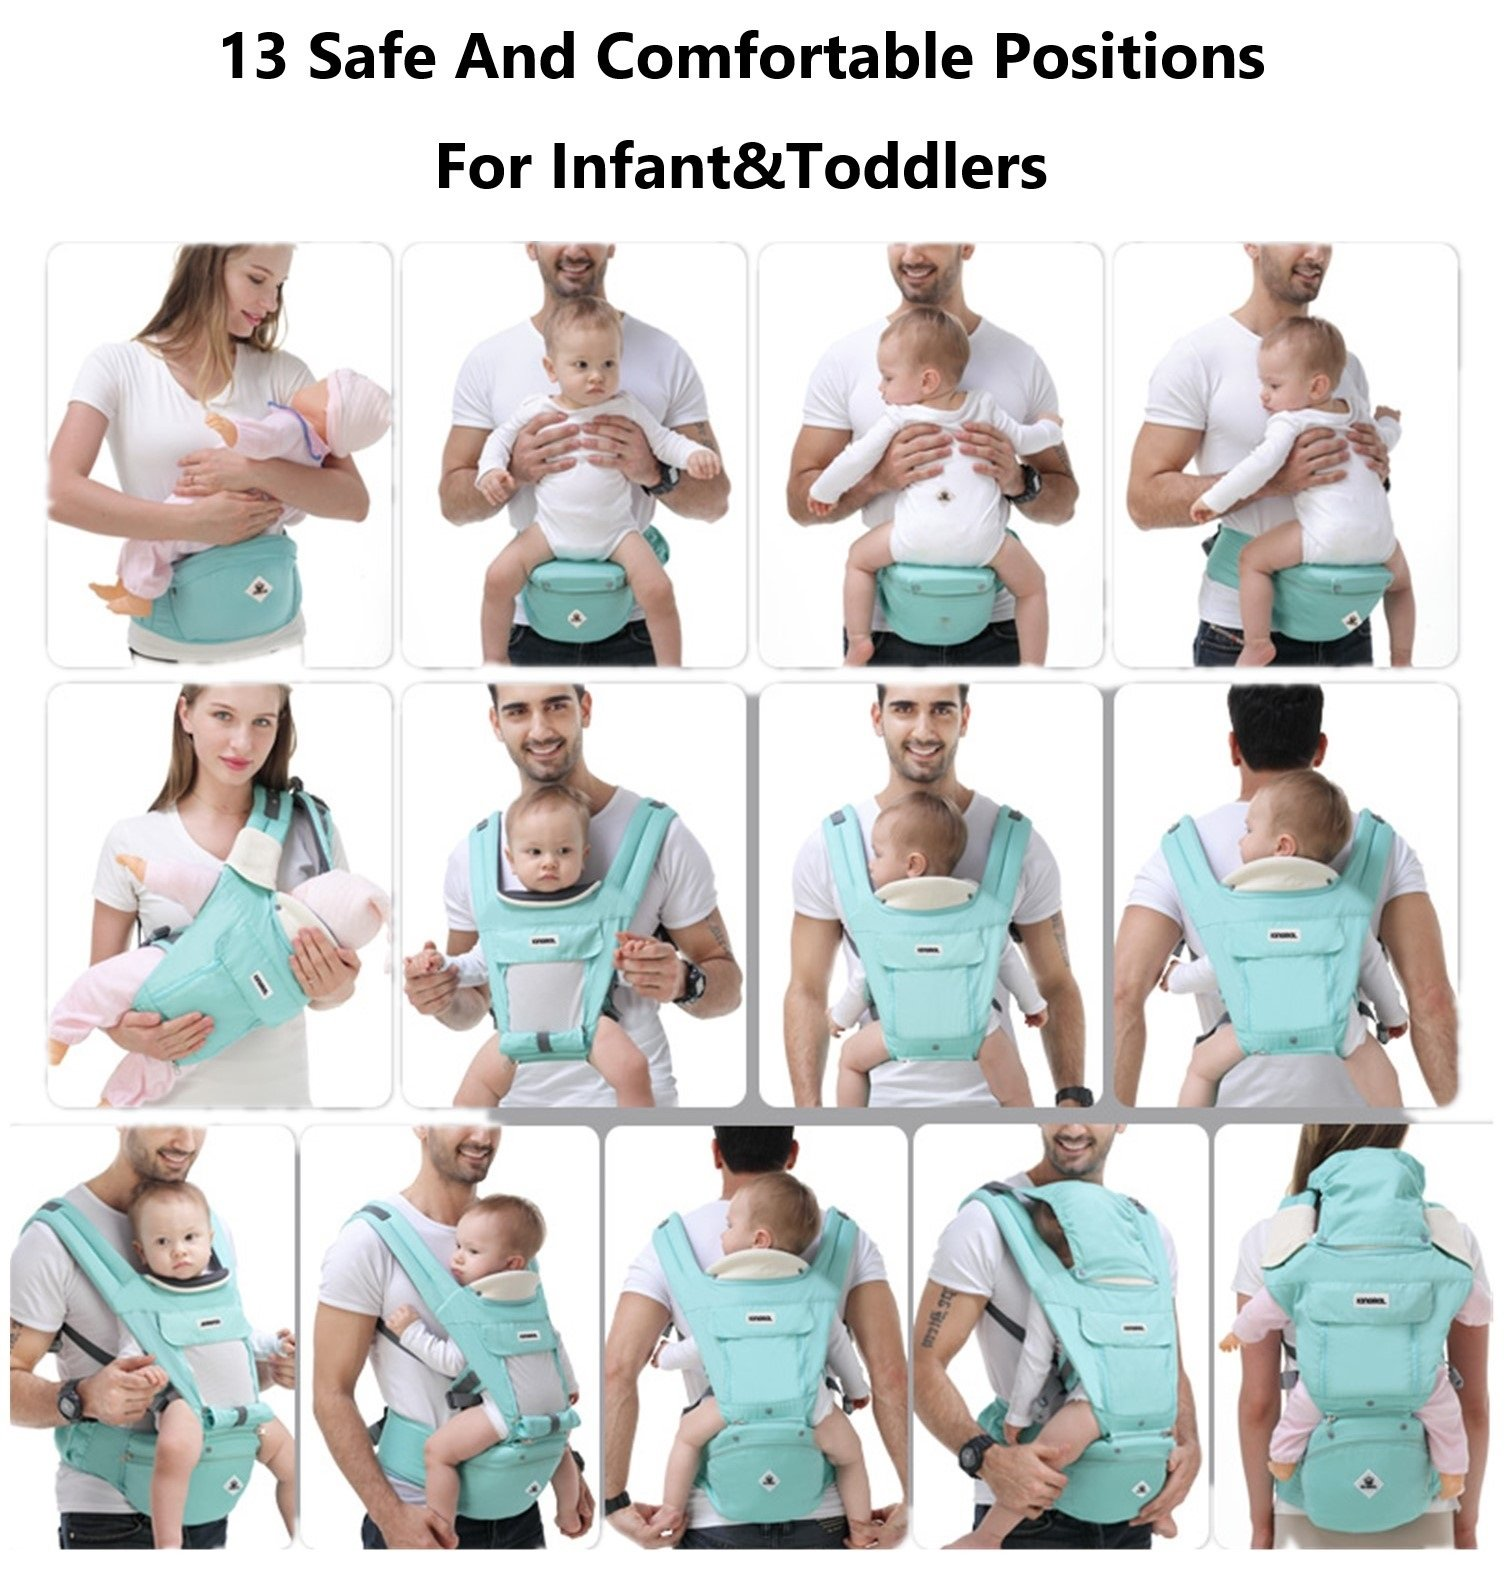 All Seasons 360 Ergonomic Baby Carrier 3 in 1 Backpack with Hip Seat-12 Position,Adapt to Growing Baby (Newborn, Infant & Toddler), Adjustable Baby Carrier Sling,Baby Diaper Bag with Large Capacity tqgold Ergonomic And Comfortable: Ergonomic Butterfly hip seat design to ensure baby's hips and legs are positioned correctly and comfortably, minimizes leg bending and prevents O-LEG Breathable And Soft: 100% cotton with high quality 3-D mesh keeps you and your baby cool. Removable shutter can keep warm in winter and cool in summer, suitable for all seasons use. Wide and sturdy lumbar belt ensures baby's weight is distributed evenly over the carrier's hip and shoulder areas for comfort 3 in 1 and All Carry Positions: The Waist Stool (bucket seat) could be detached from Upper Strap by unbuckling the connection buckles. Both Upper Strap and Waist Stool can be used separately. Front inward (fetal, infant, or toddler settings), front outward, hip or backpack carry options all in one. Face baby in or out. Wear on the hip or back as baby grows. 6